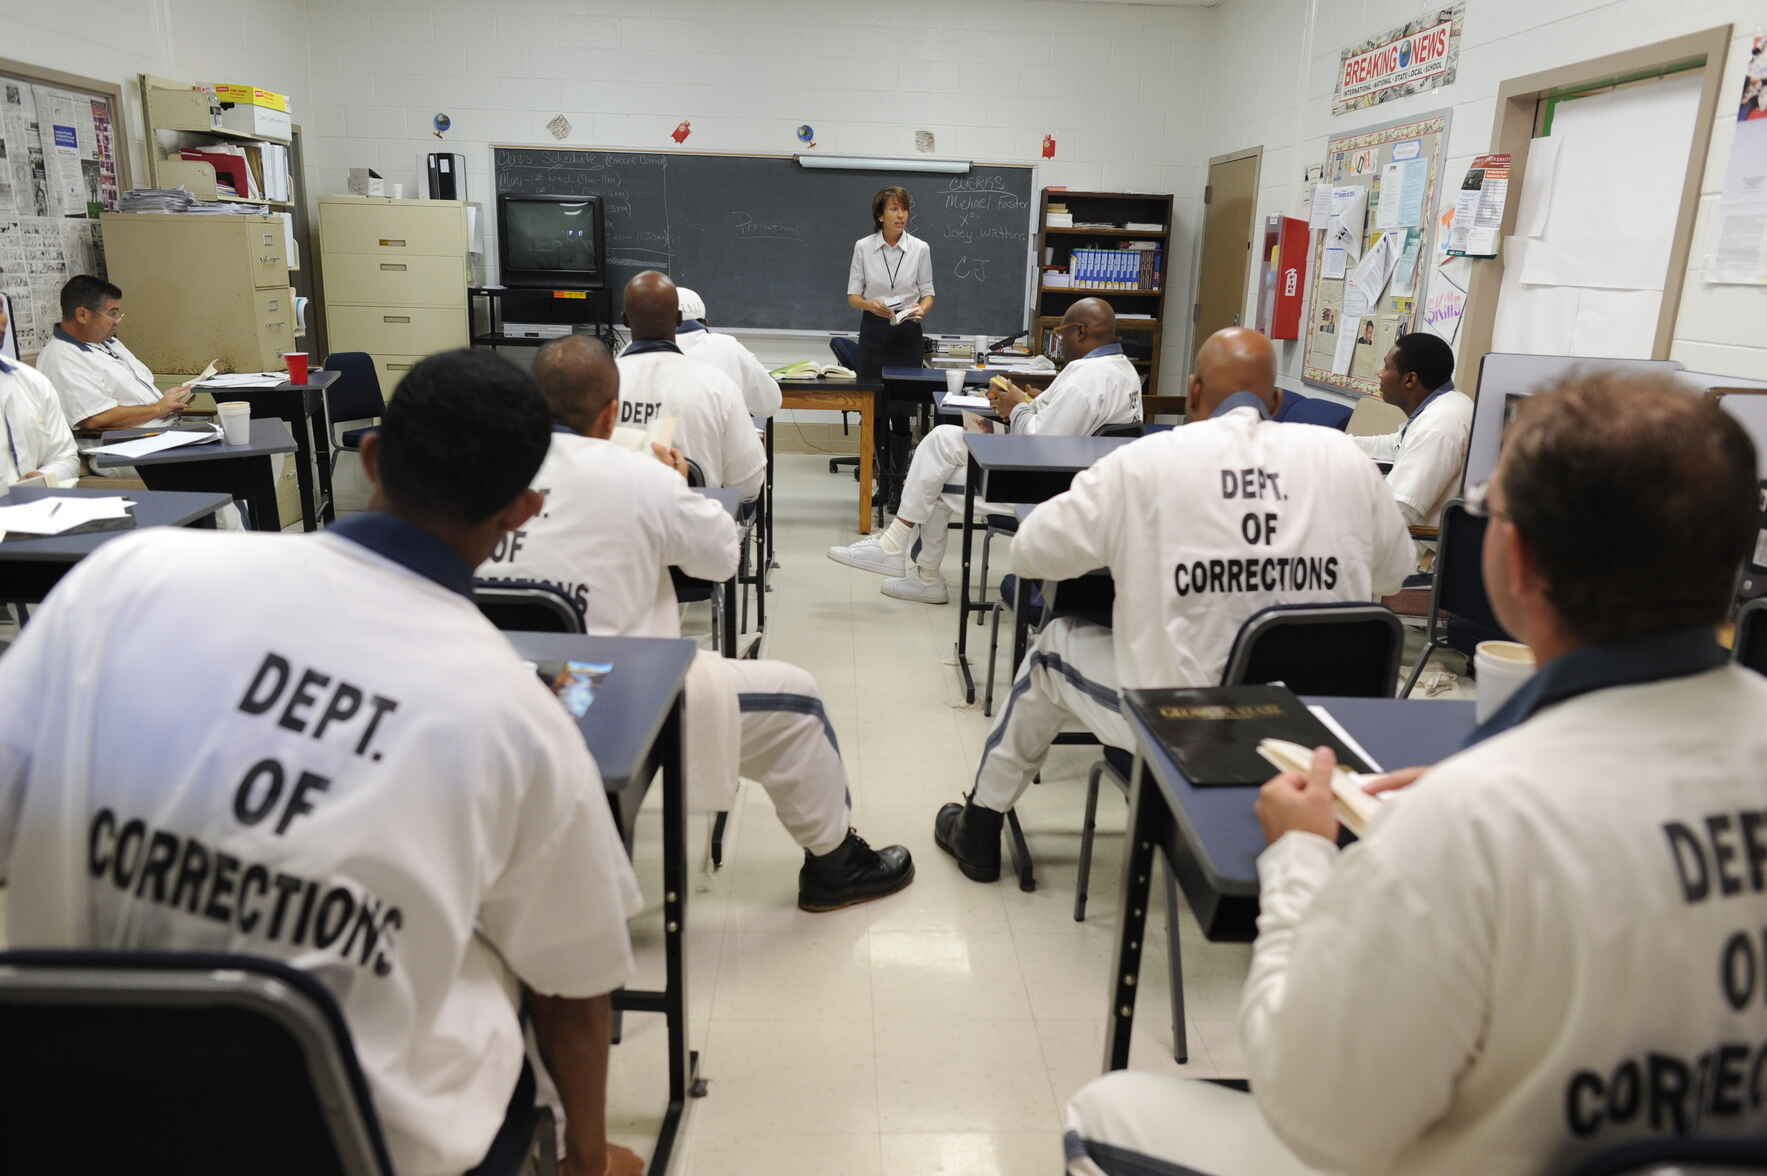 Donate now to help bring higher education to incarcerated and formerly incarcerated people. image